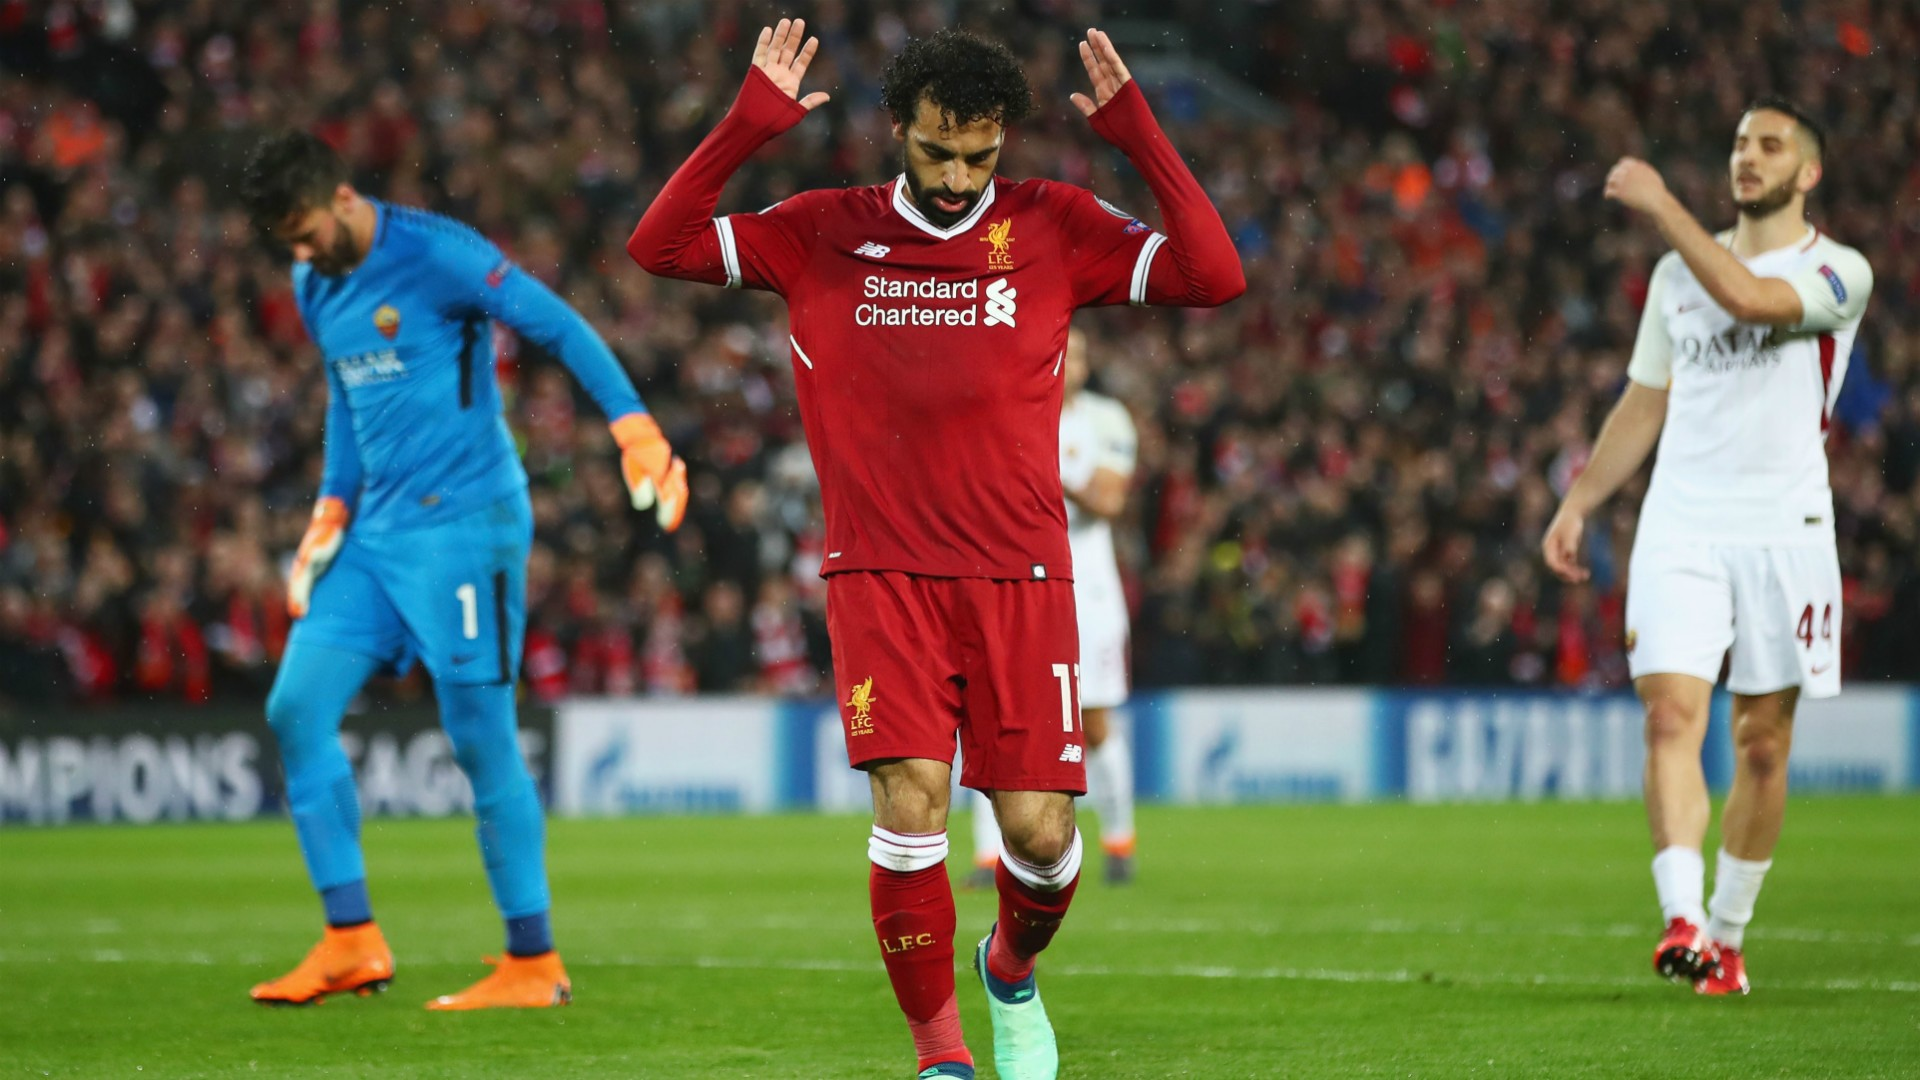 UCL (2017-2018) Report: Liverpool 5 Roma 2 - Salah shines but late comeback offers Giallorossi hope